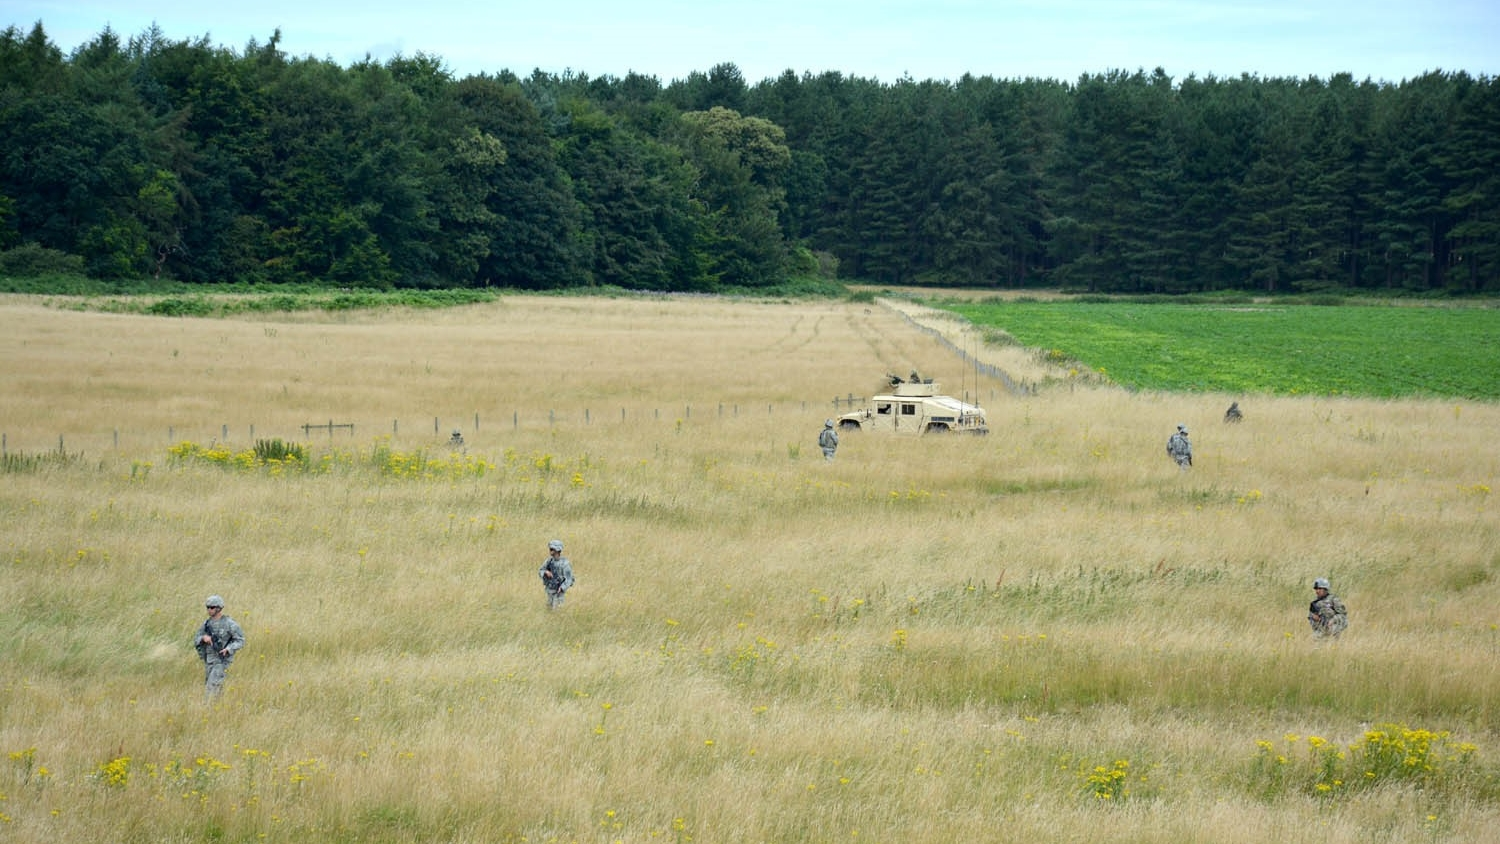 Soldiers patrol the outer-perimeter of a village, on the Stanford Training Area, United Kingdom, during the culminating event of Steppe Eagle 2016, on July 29